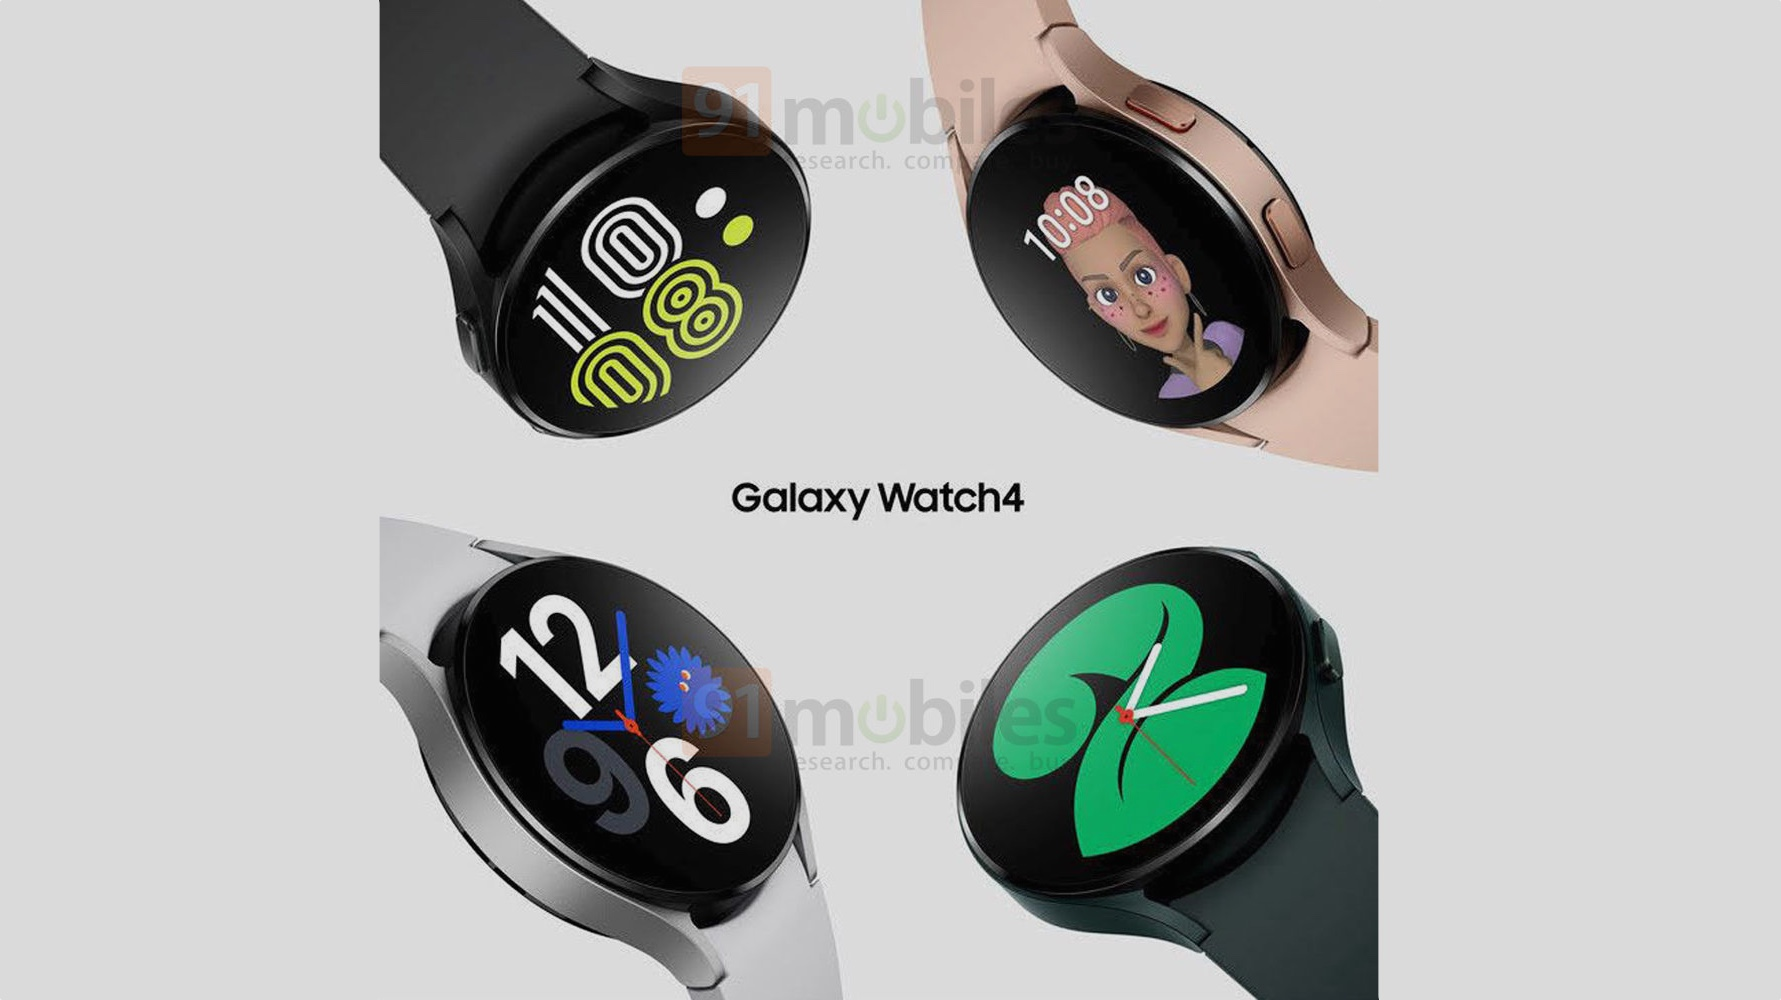 More Galaxy Watch 4 images leak